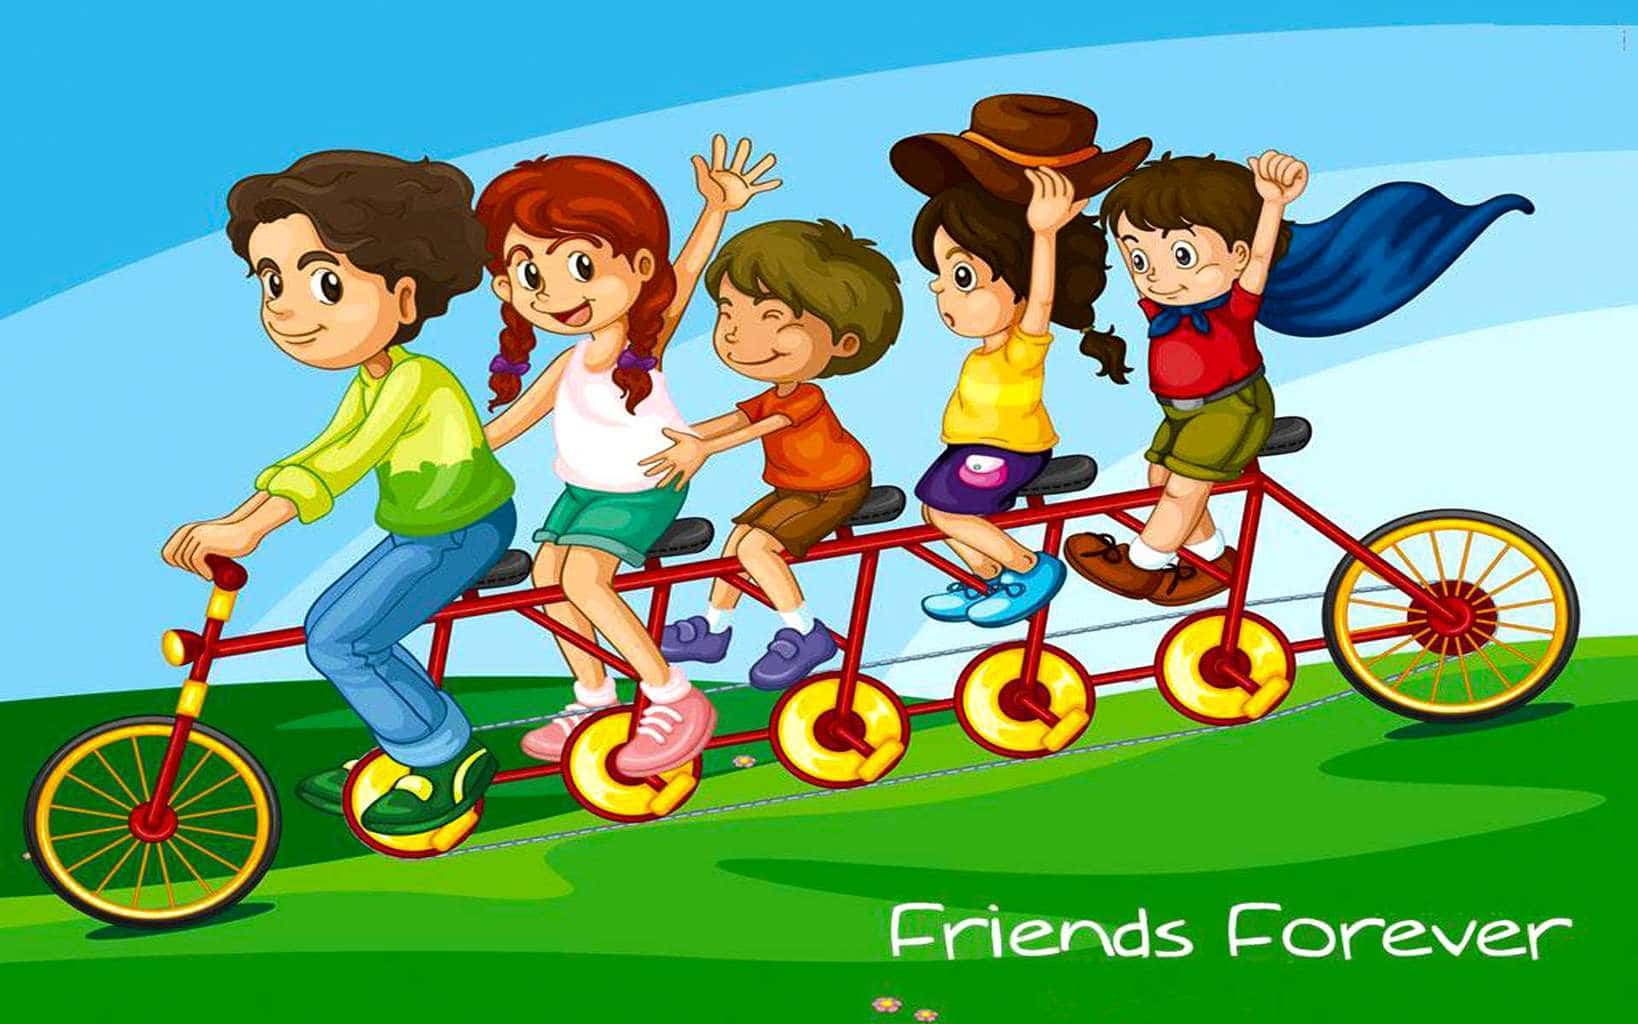 Friends Forever And Together On Cycle